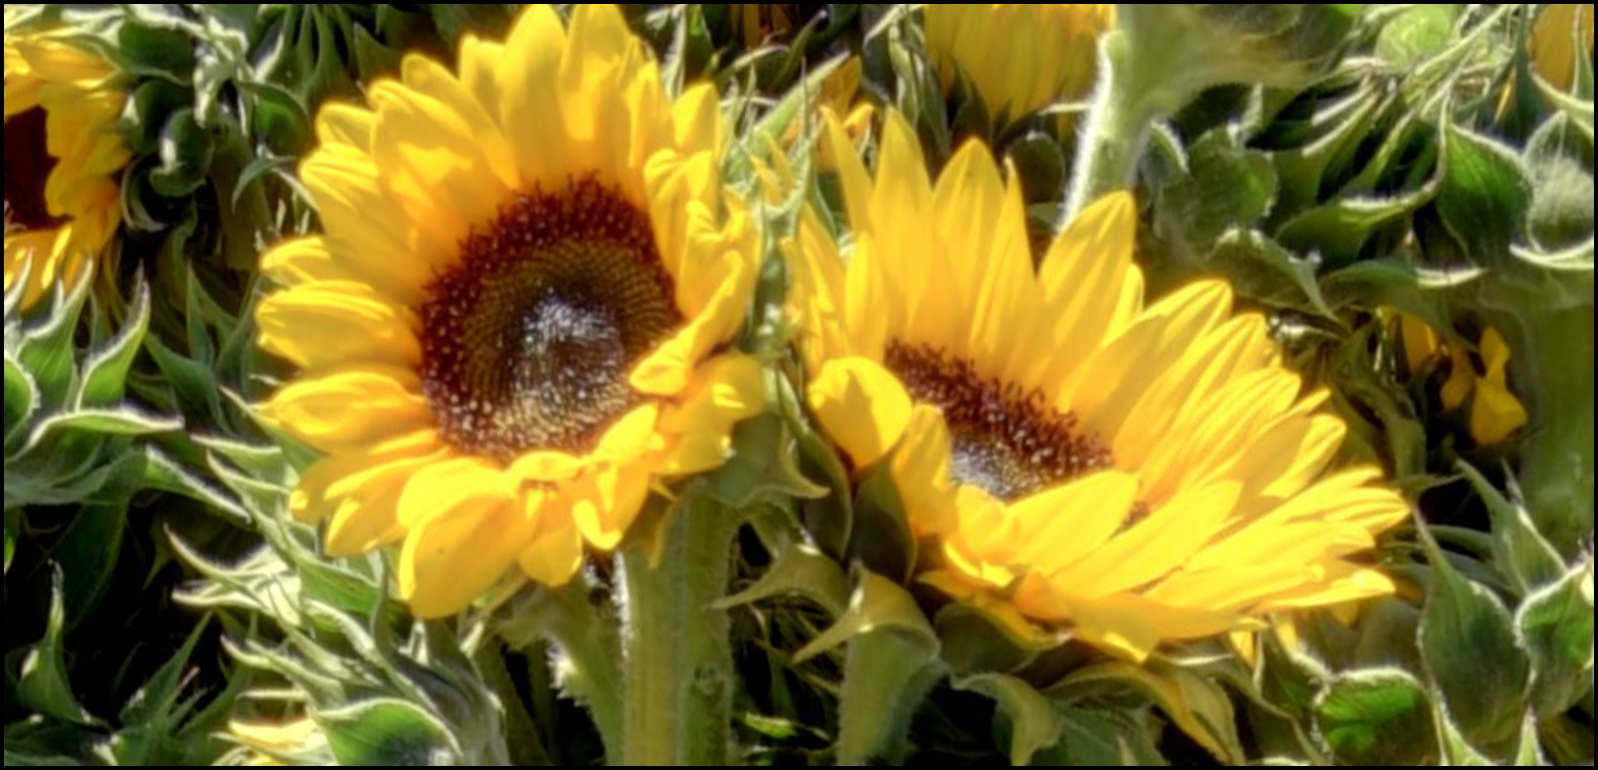 Sunflower Harvest at Mattison Field